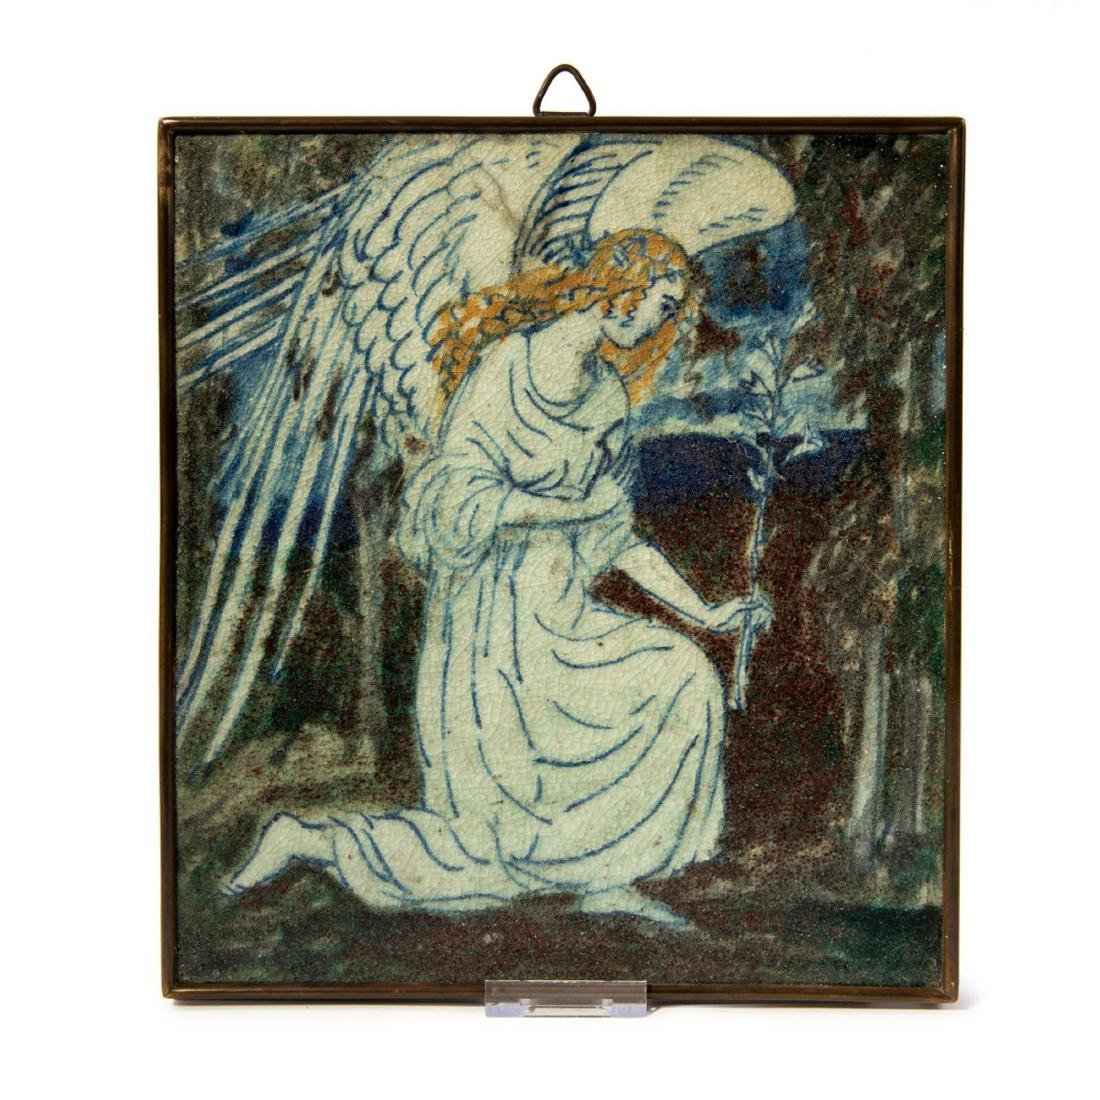 'Annunciation angel' tile, 1923